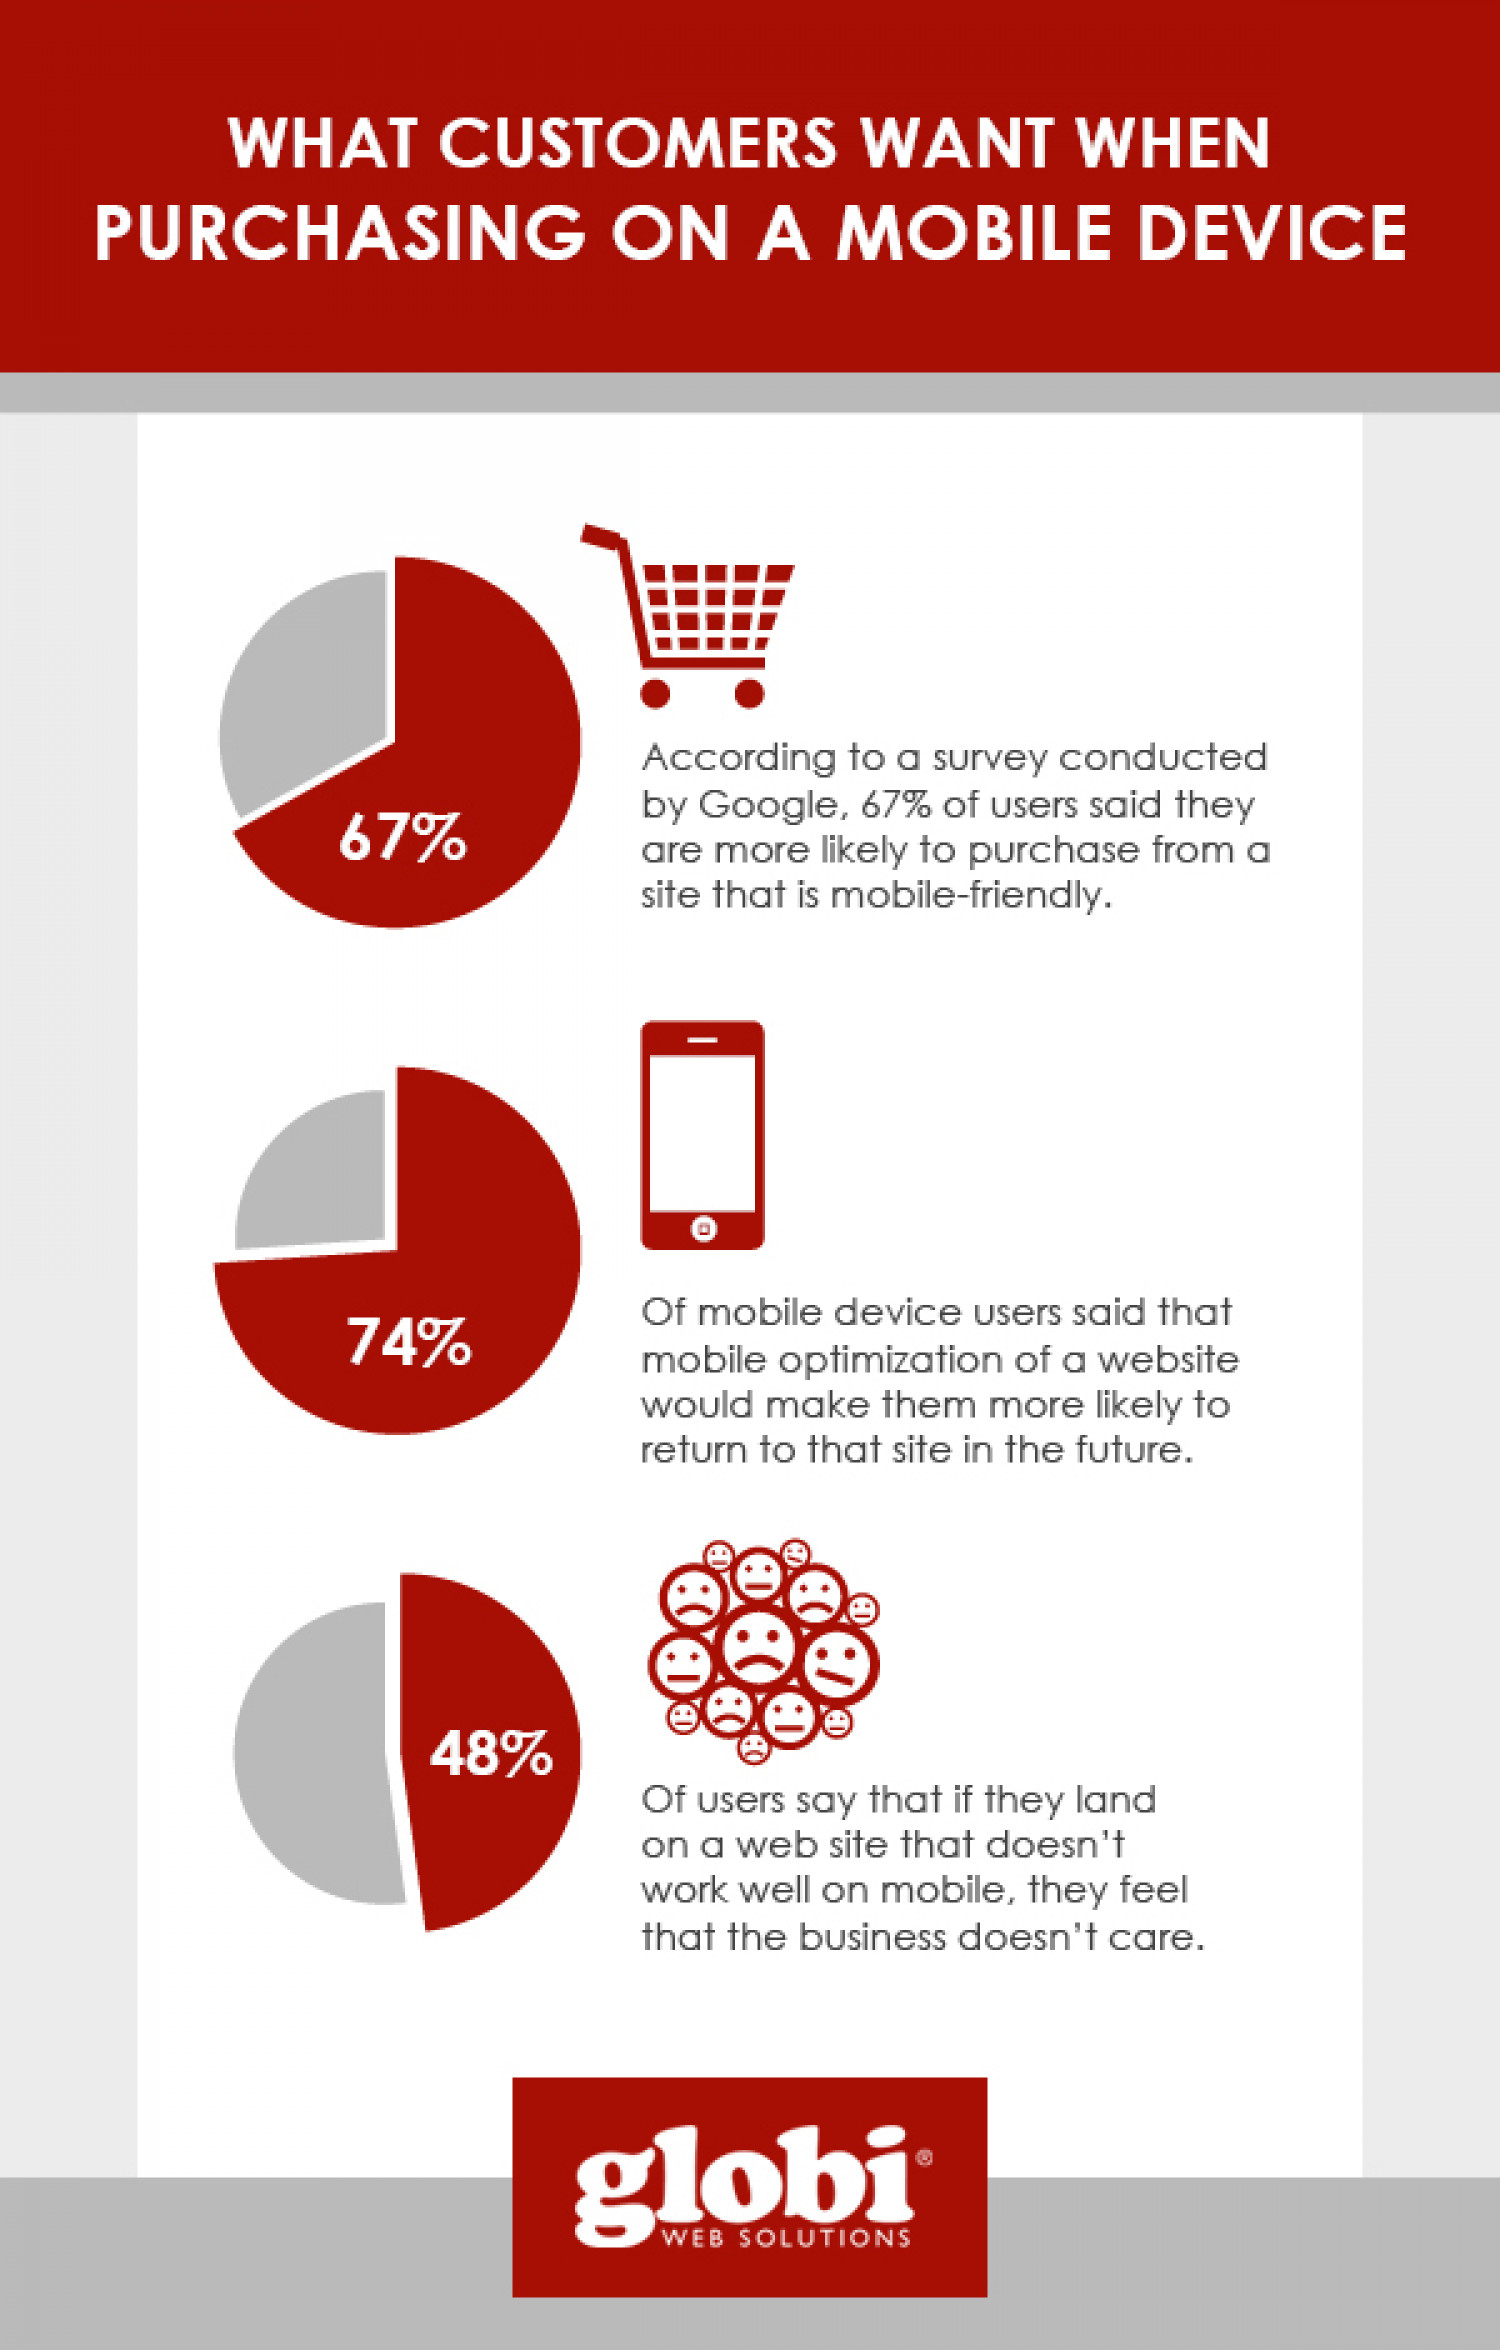 What Customers Want When Purchasing on a Mobile Device Infographic